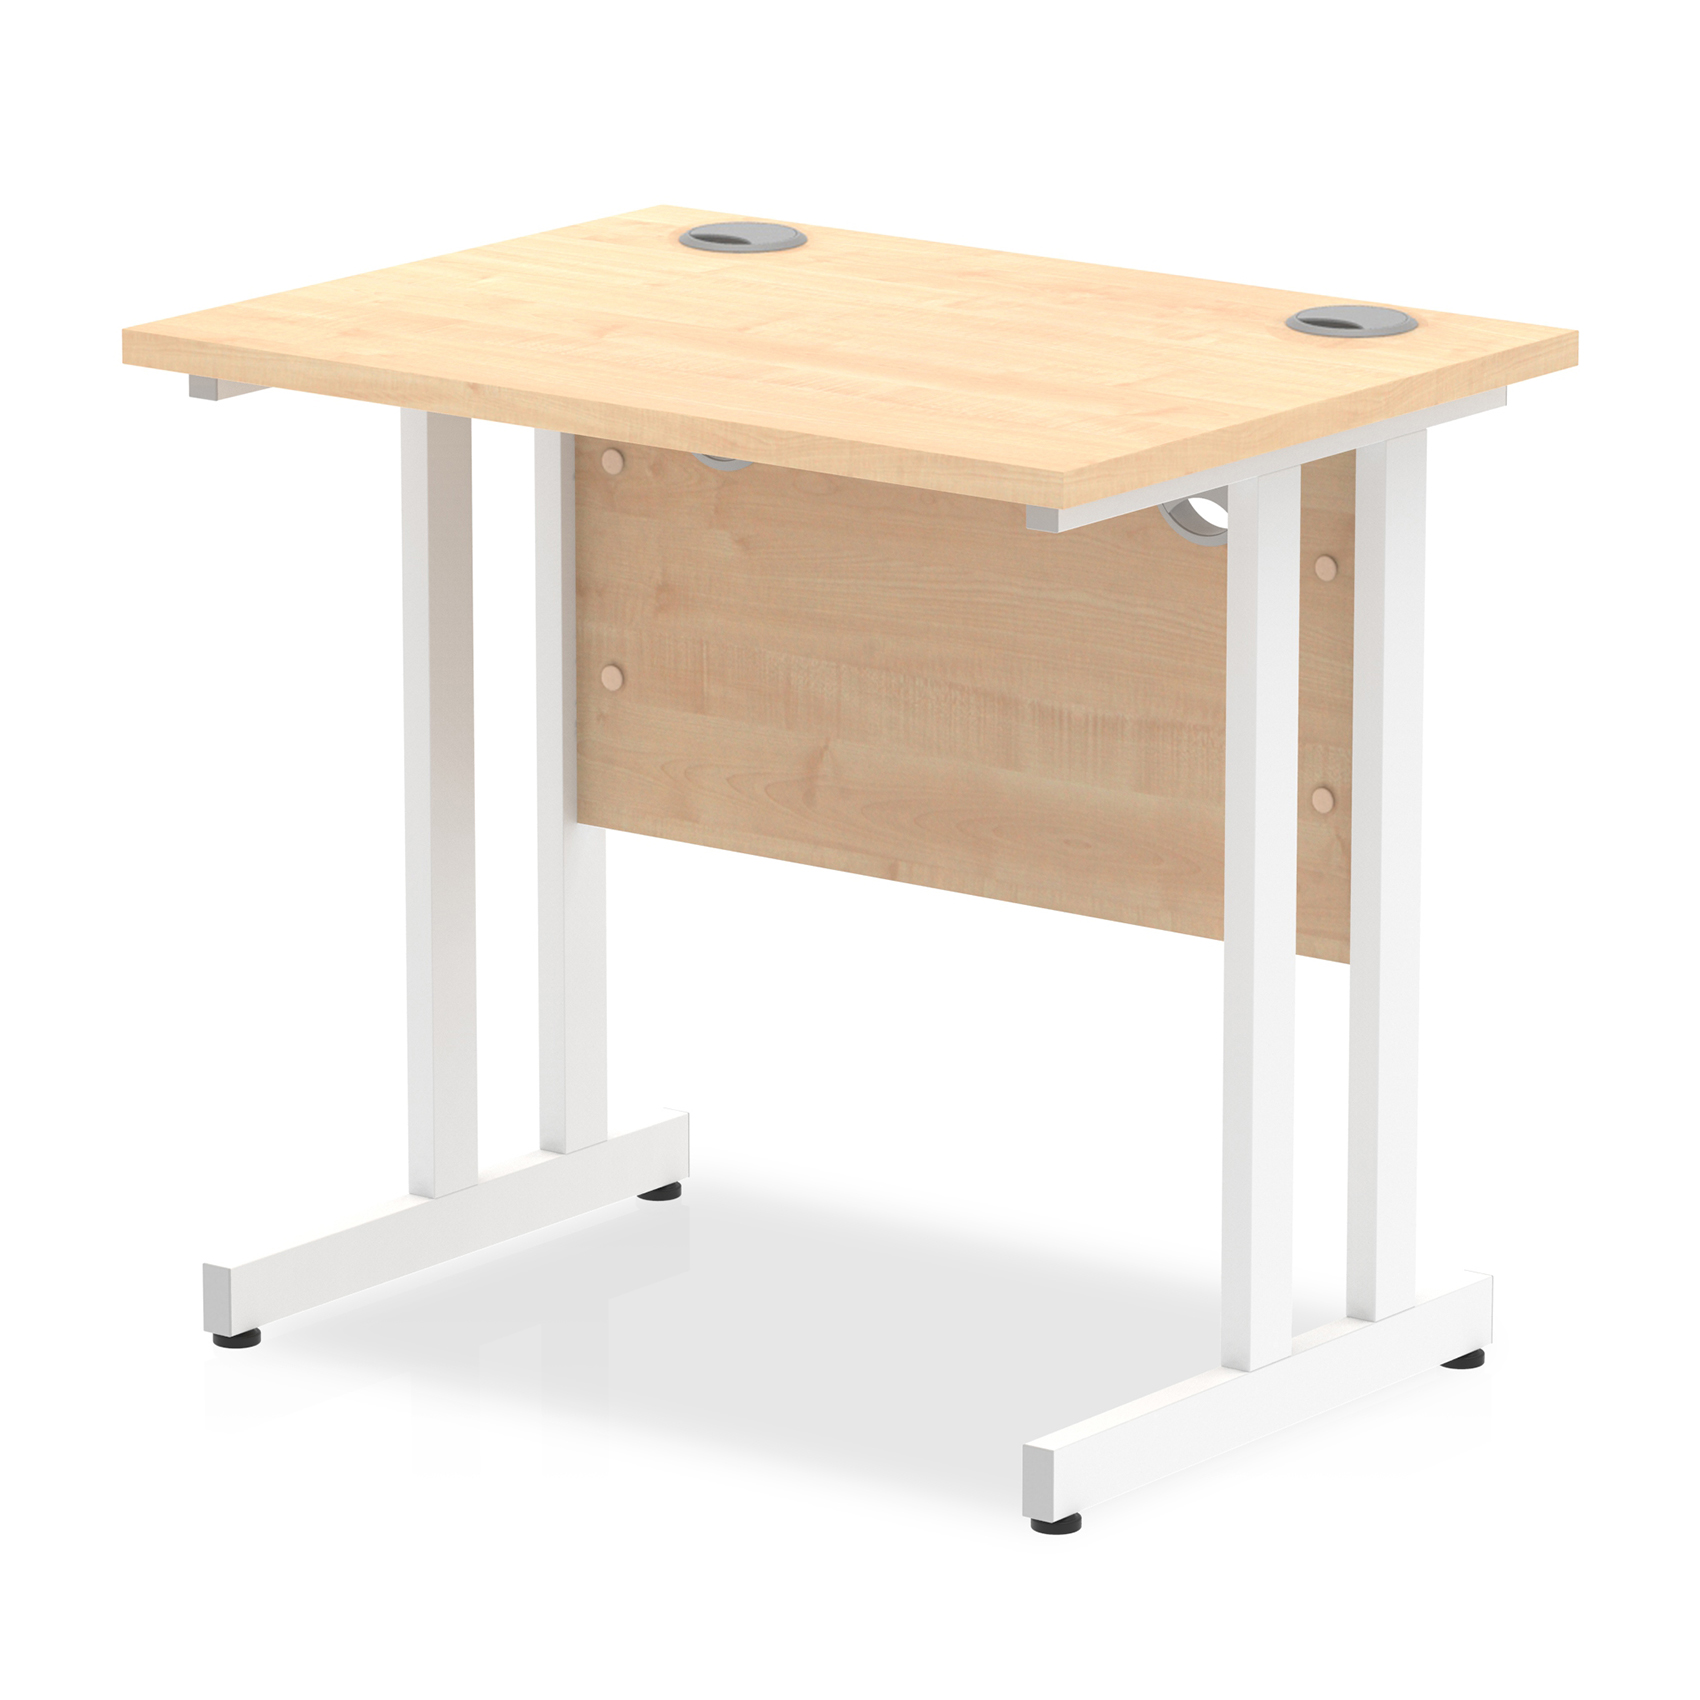 Trexus Desk Rectangle Cantilever White Leg 800x600mm Maple Ref MI002900